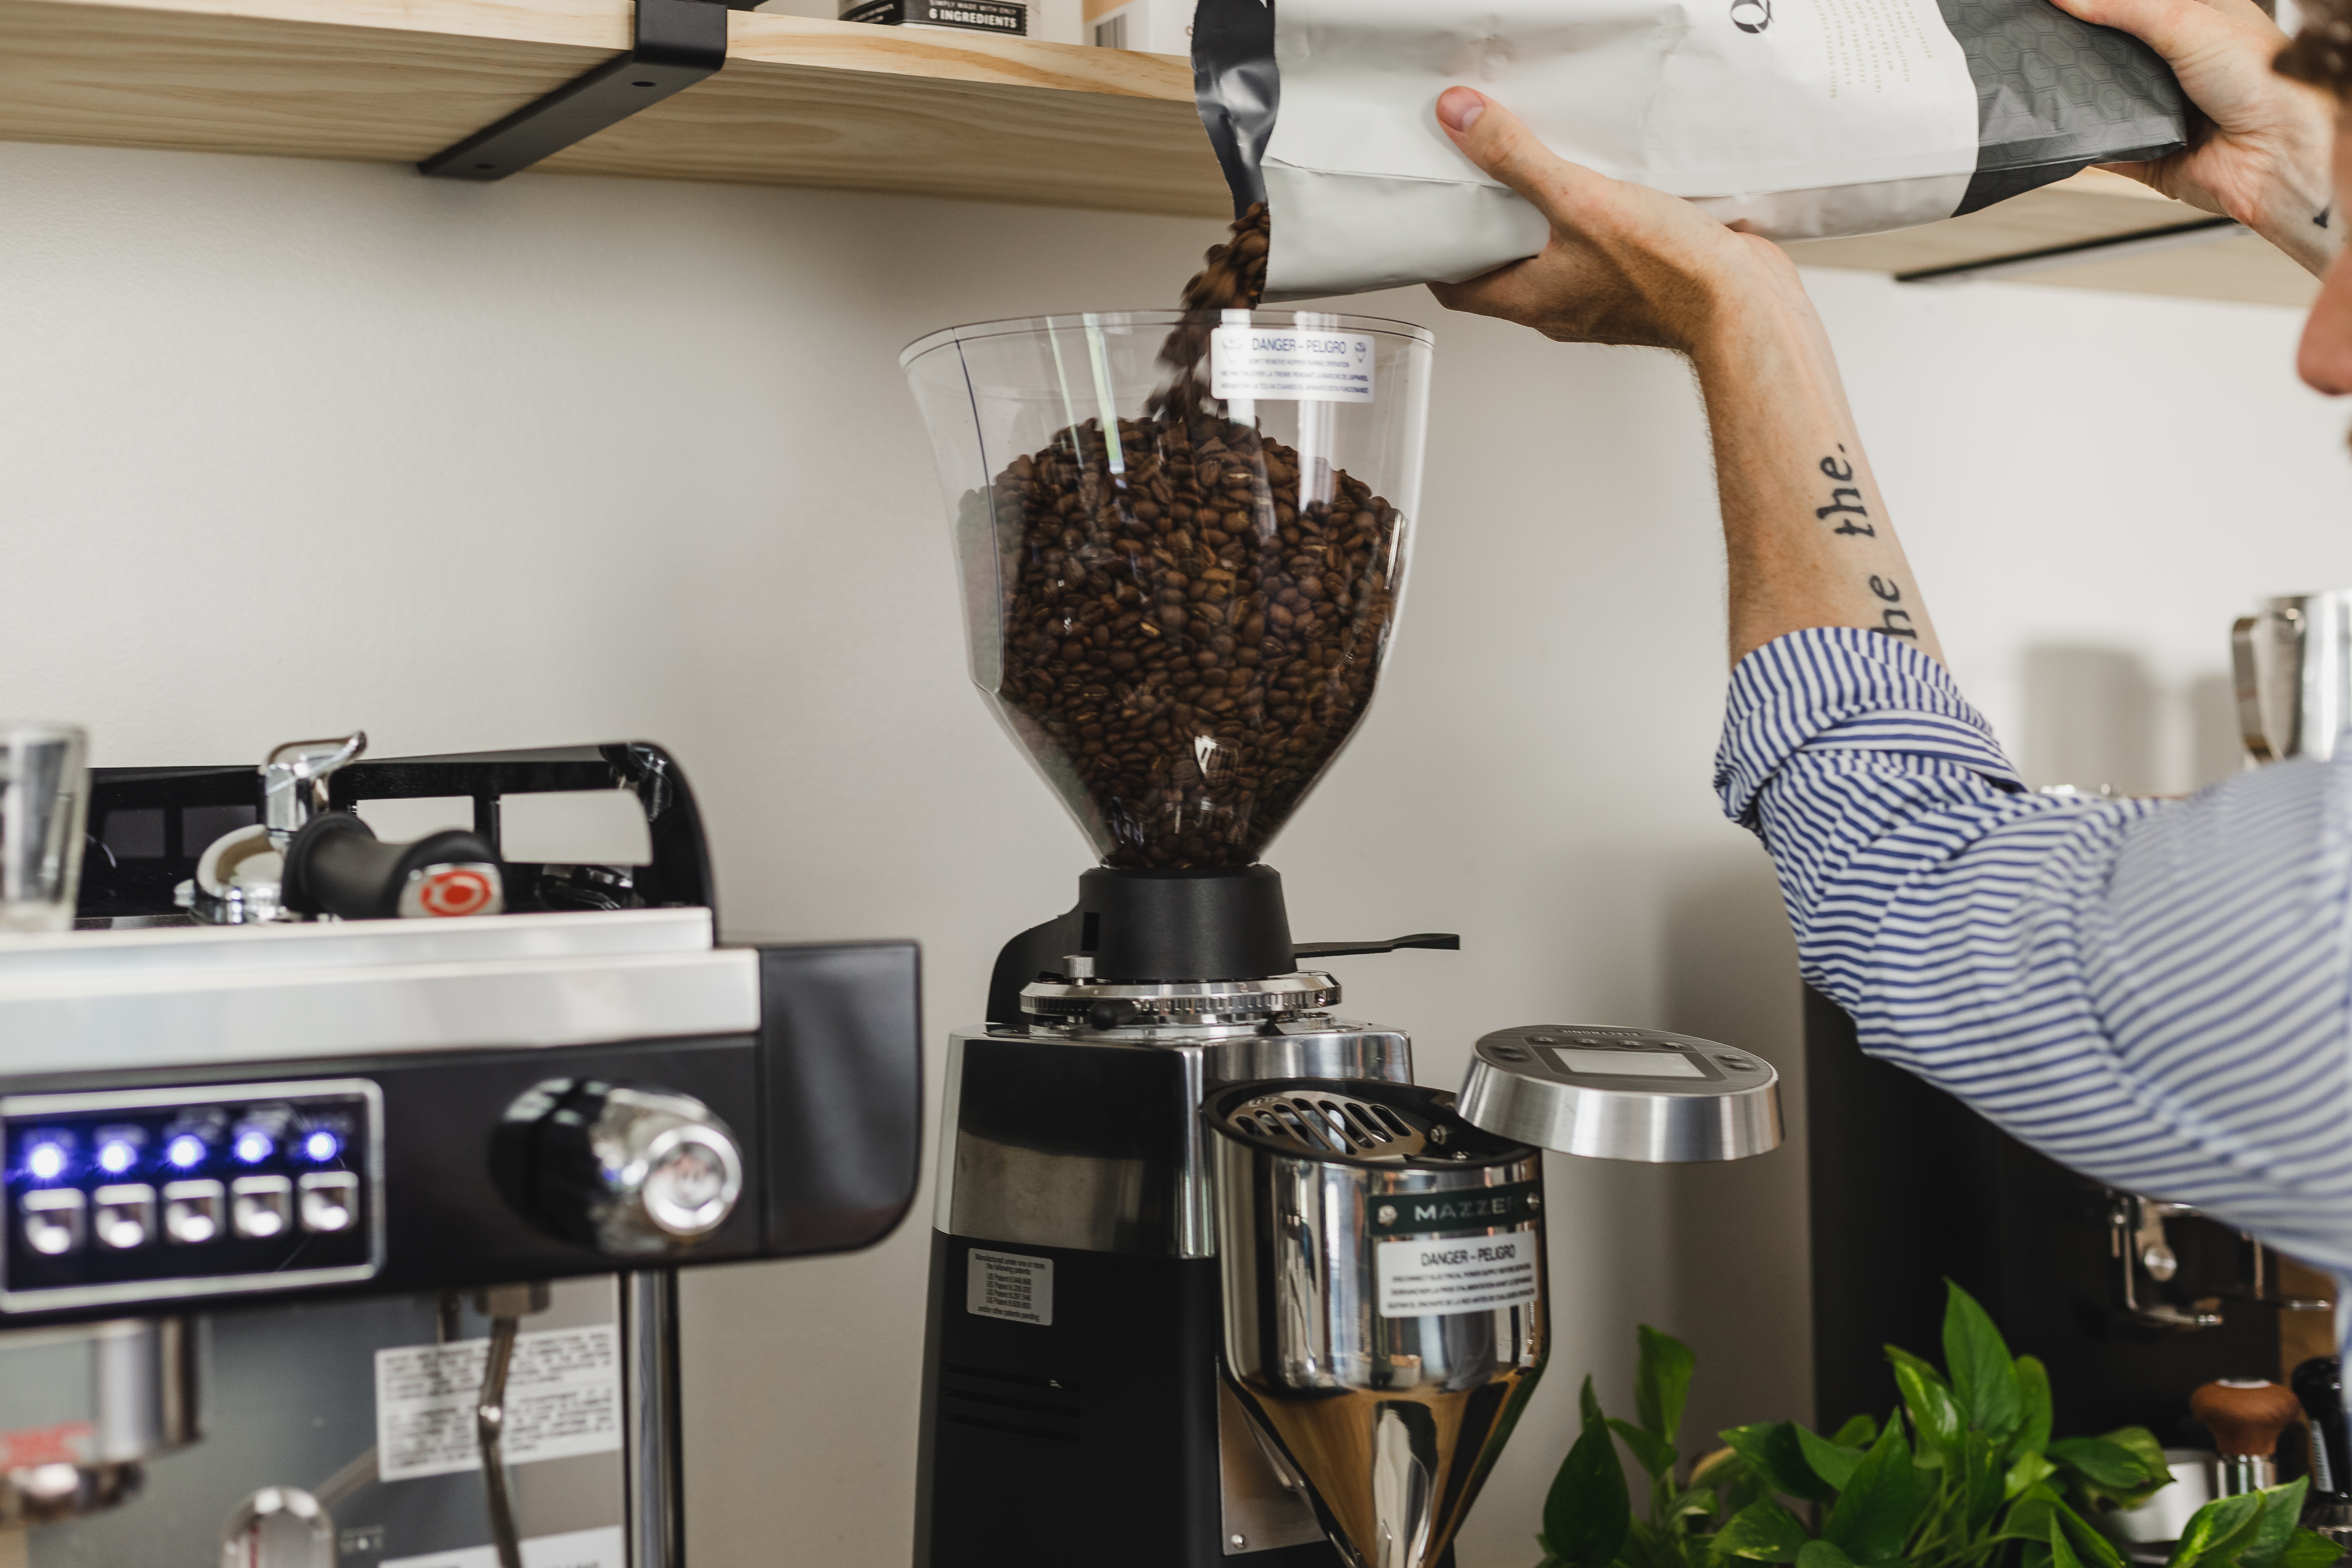 Hopper being filled with coffee beans